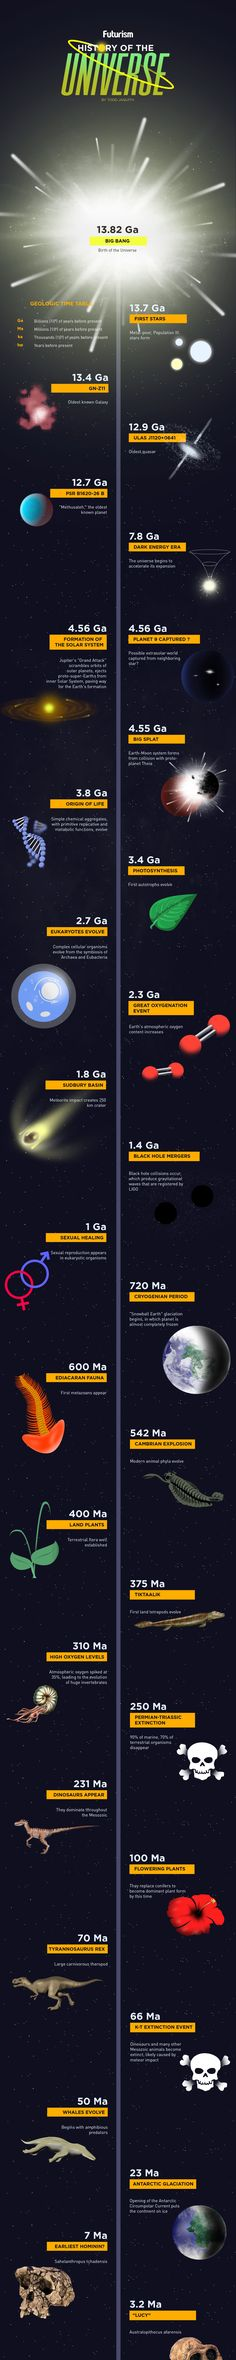 The History Of The Universe [Infographic]